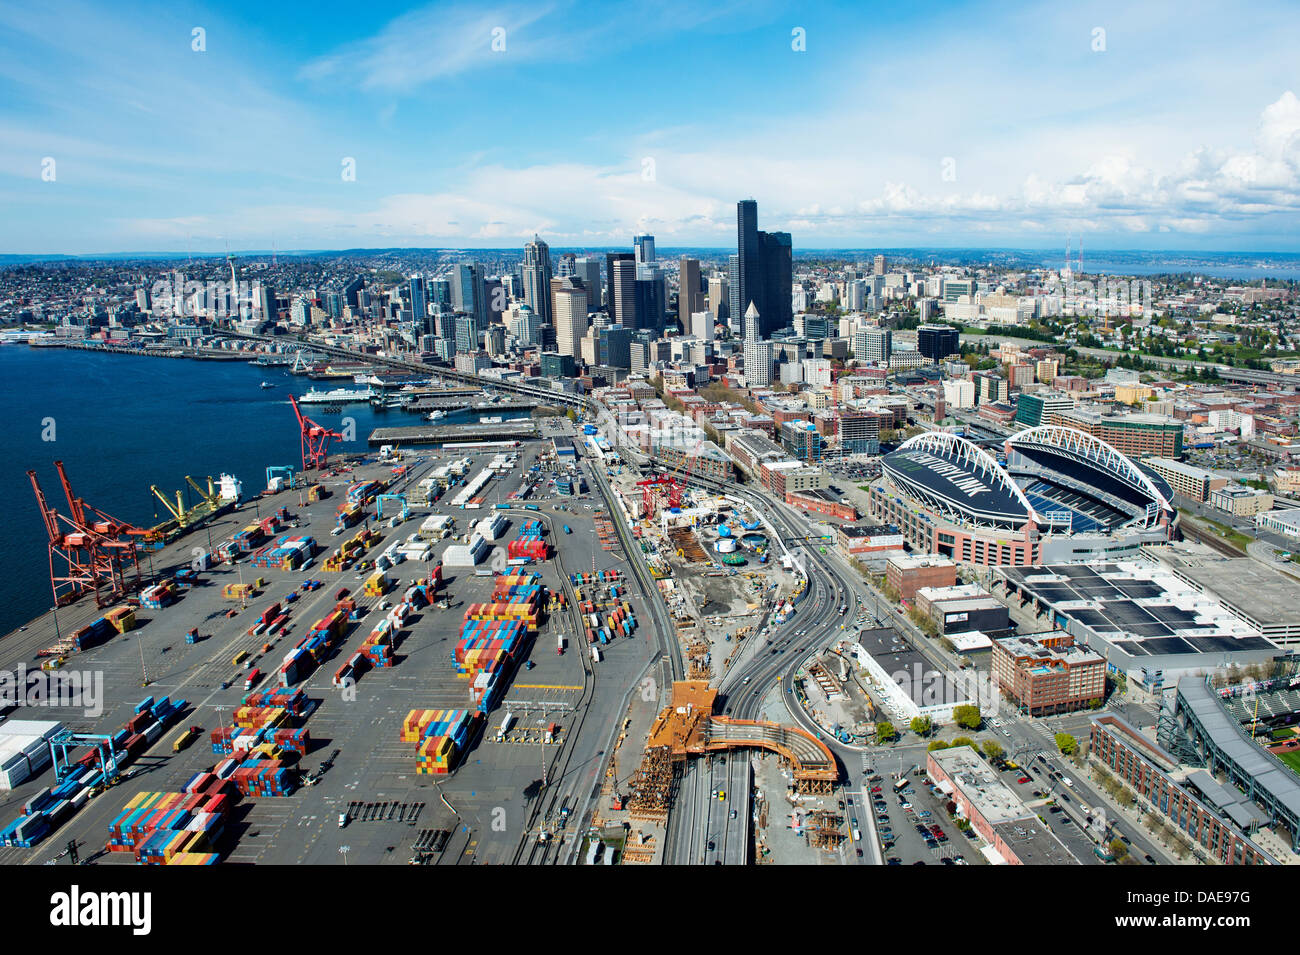 Aerial view of shipping harbour seattle washington state usa stock photo royalty free image for Build on your lot washington state